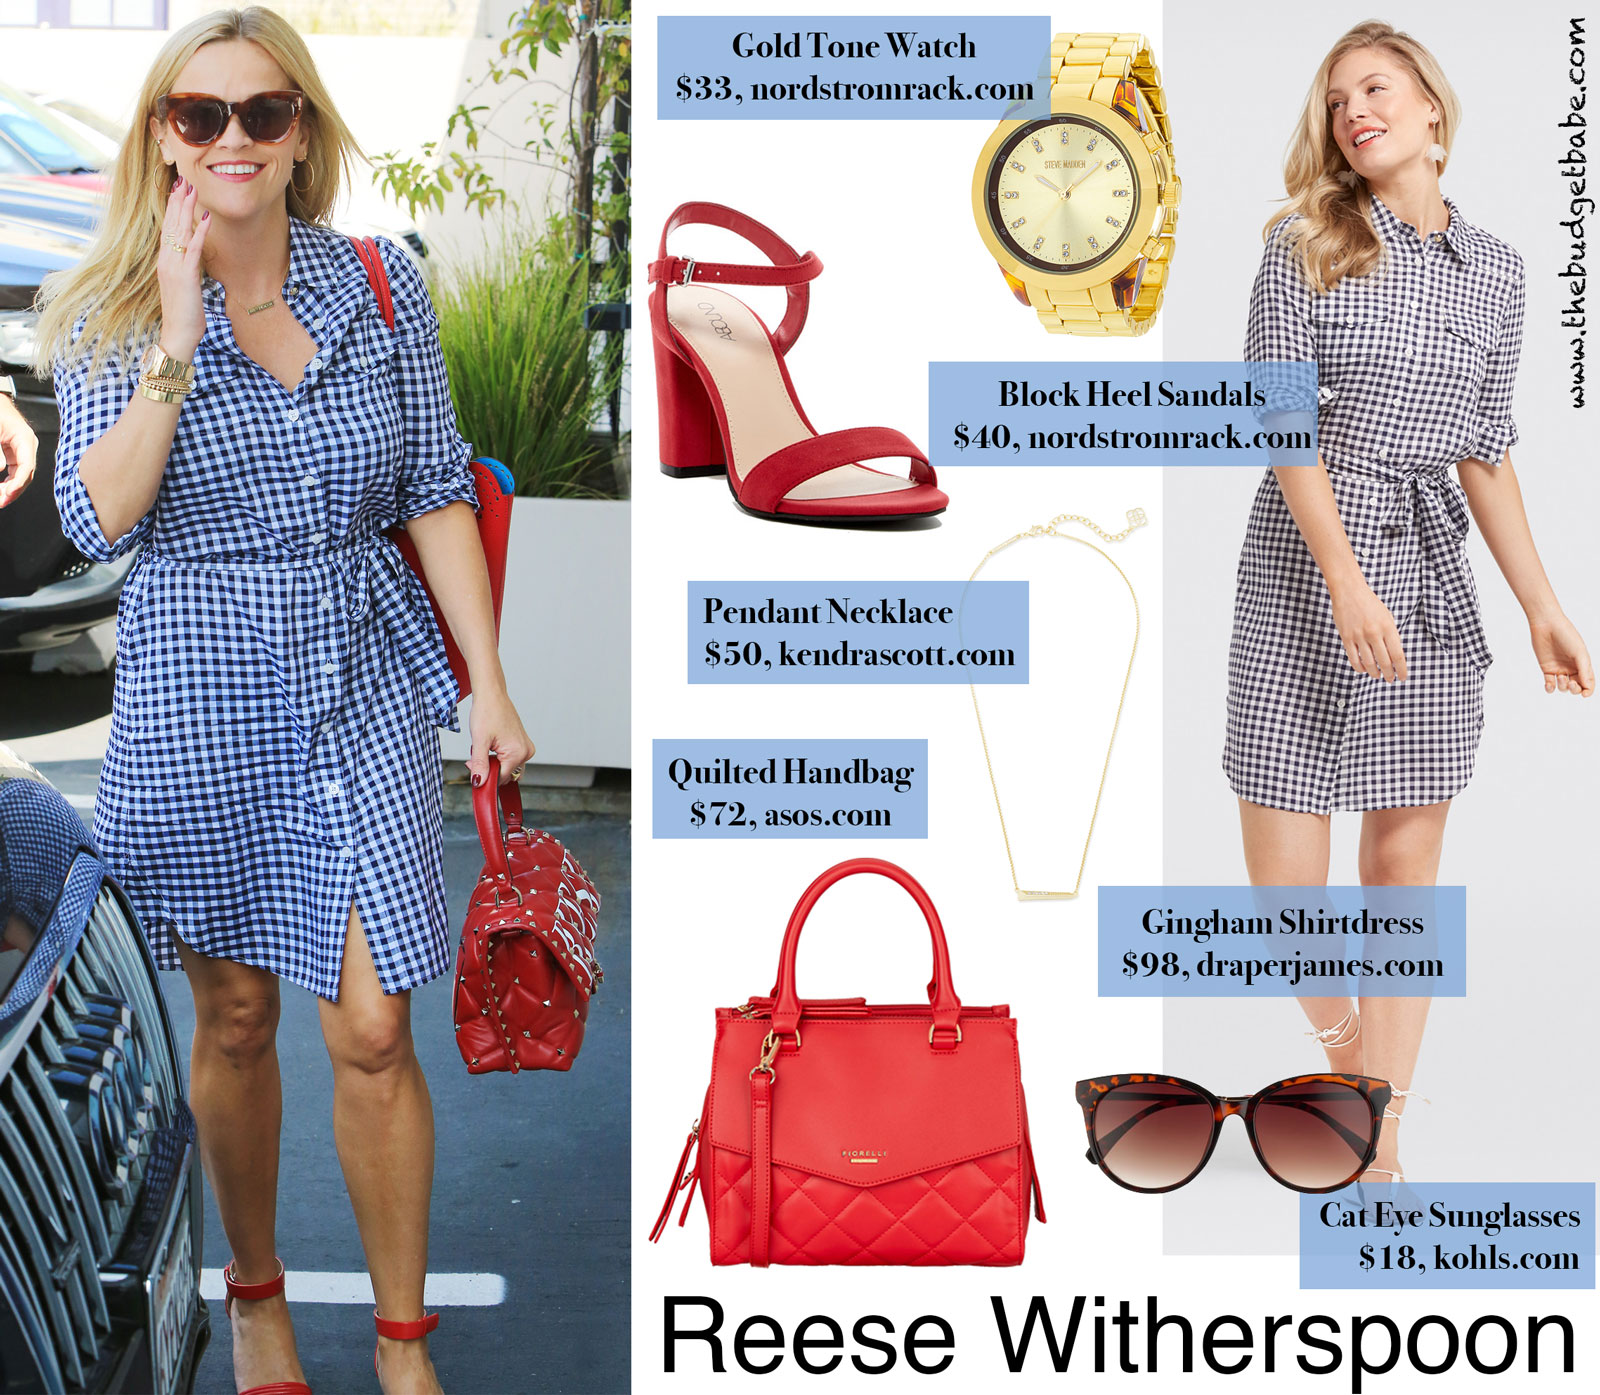 Reese Witherspoon Gingham Dress Look for Less